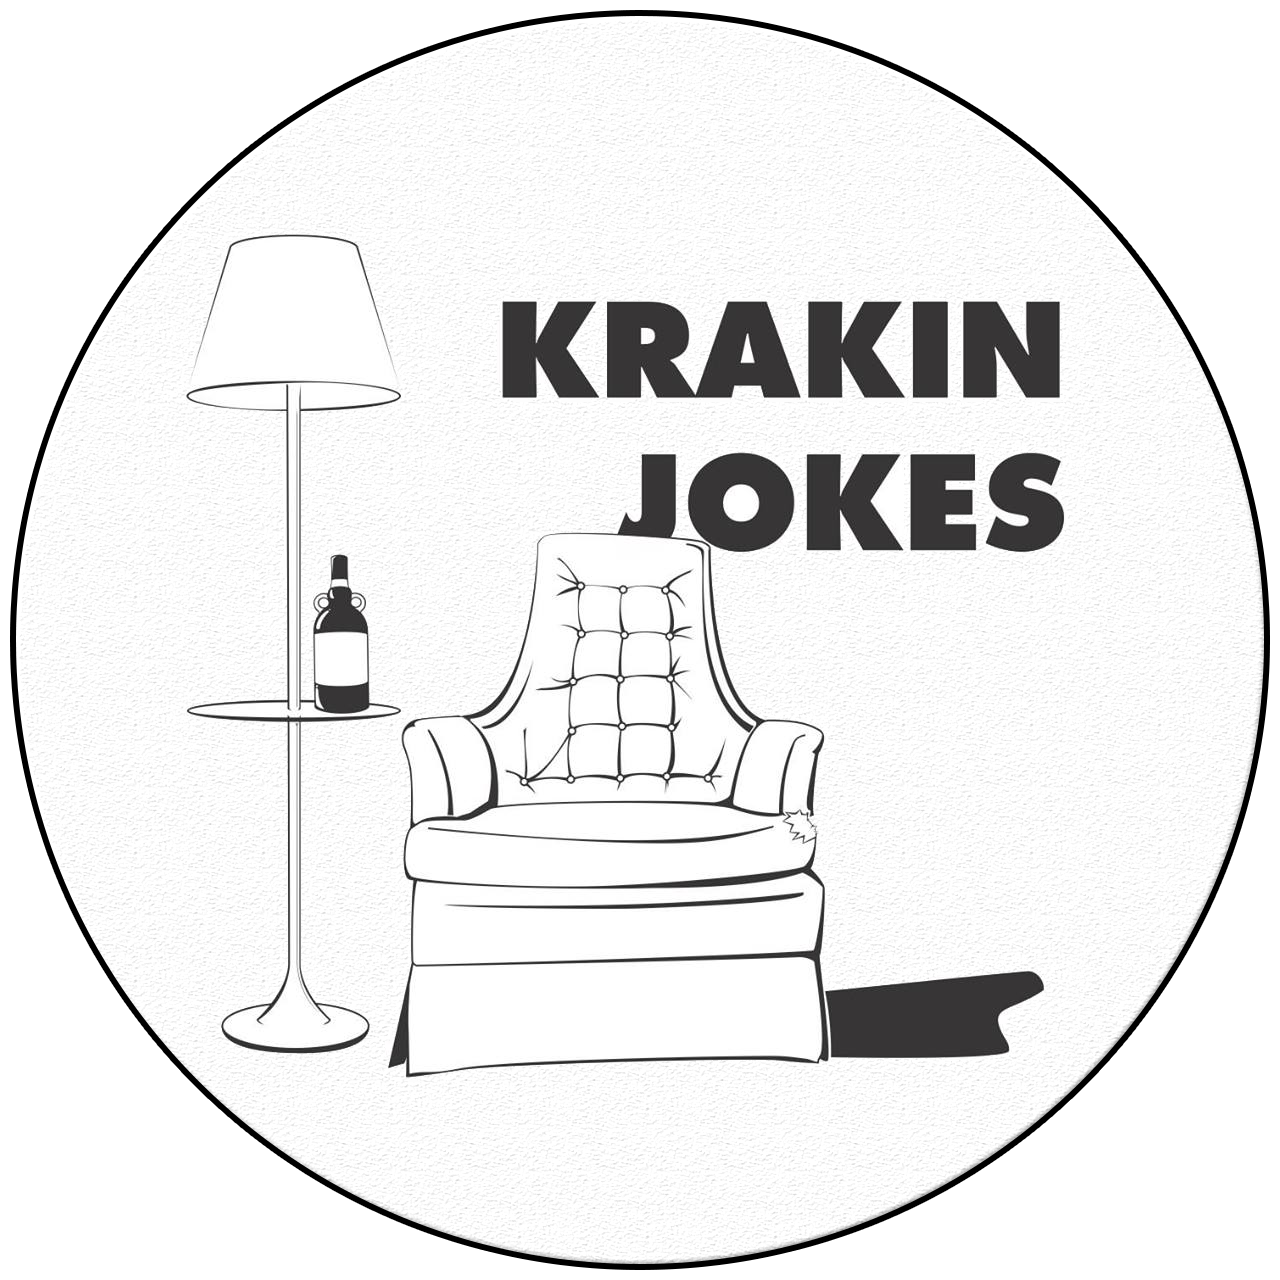 Krakin Jokes